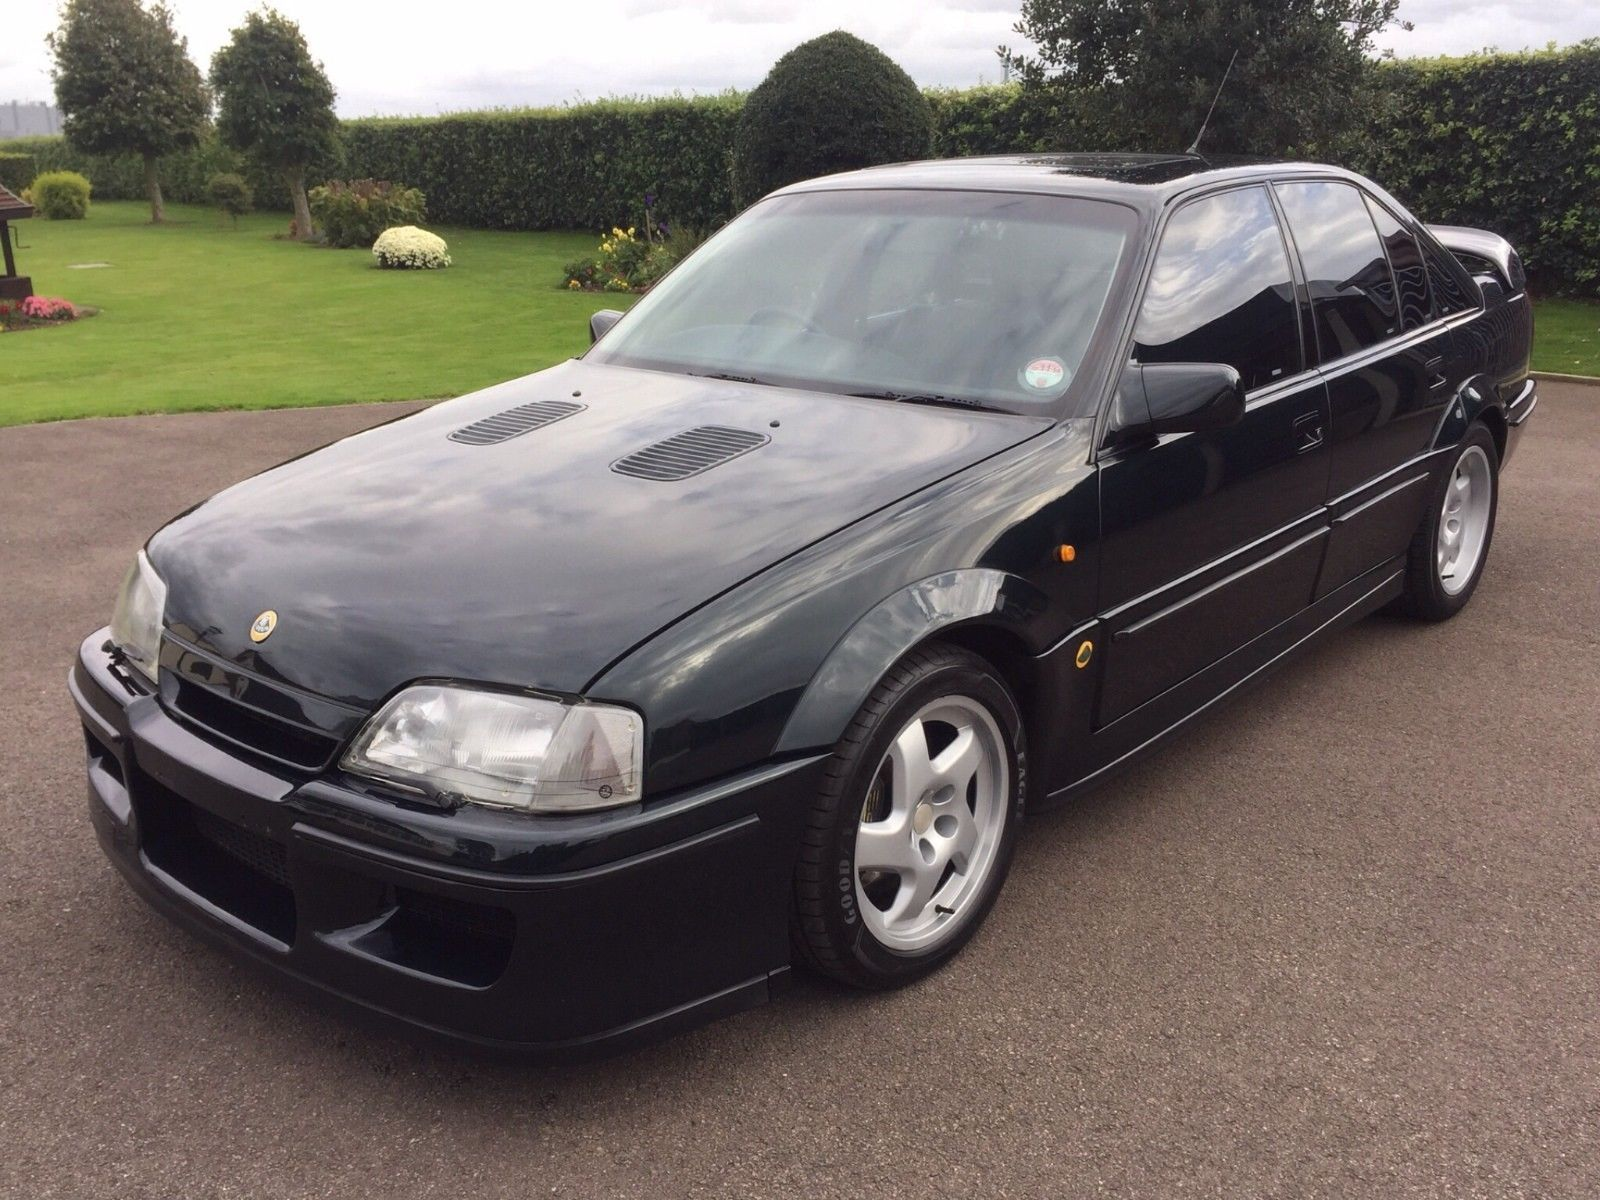 261c77e1de3c74661d49671e1ed95d65 Surprising Lotus Carlton Engine for Sale Cars Trend